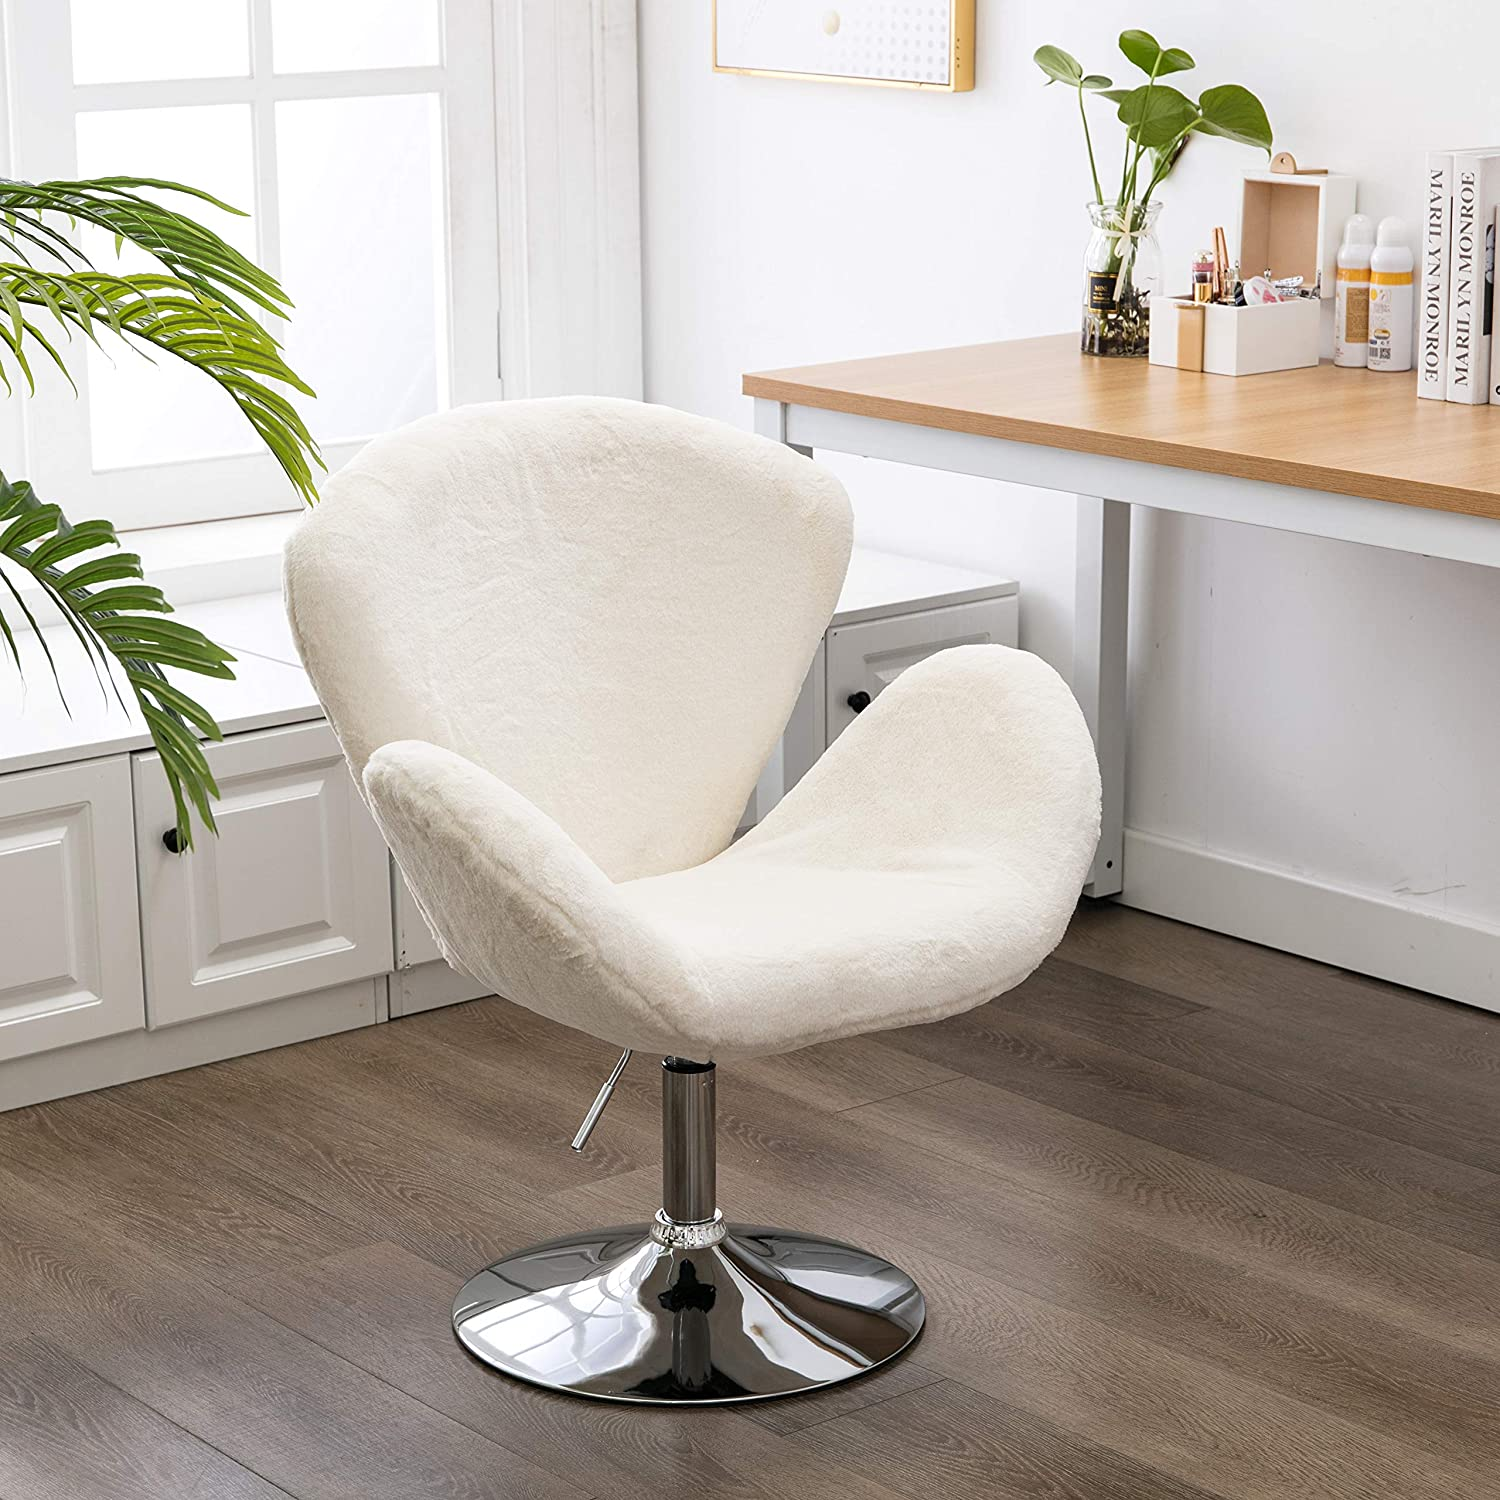 ZHENGHAO Soft Fuzzy Swivel Makeup Stool, Modern White Swan Chair Faux Rabbit Fur Accent Chair for Living Room Bedroom Dressing Room Ivory White